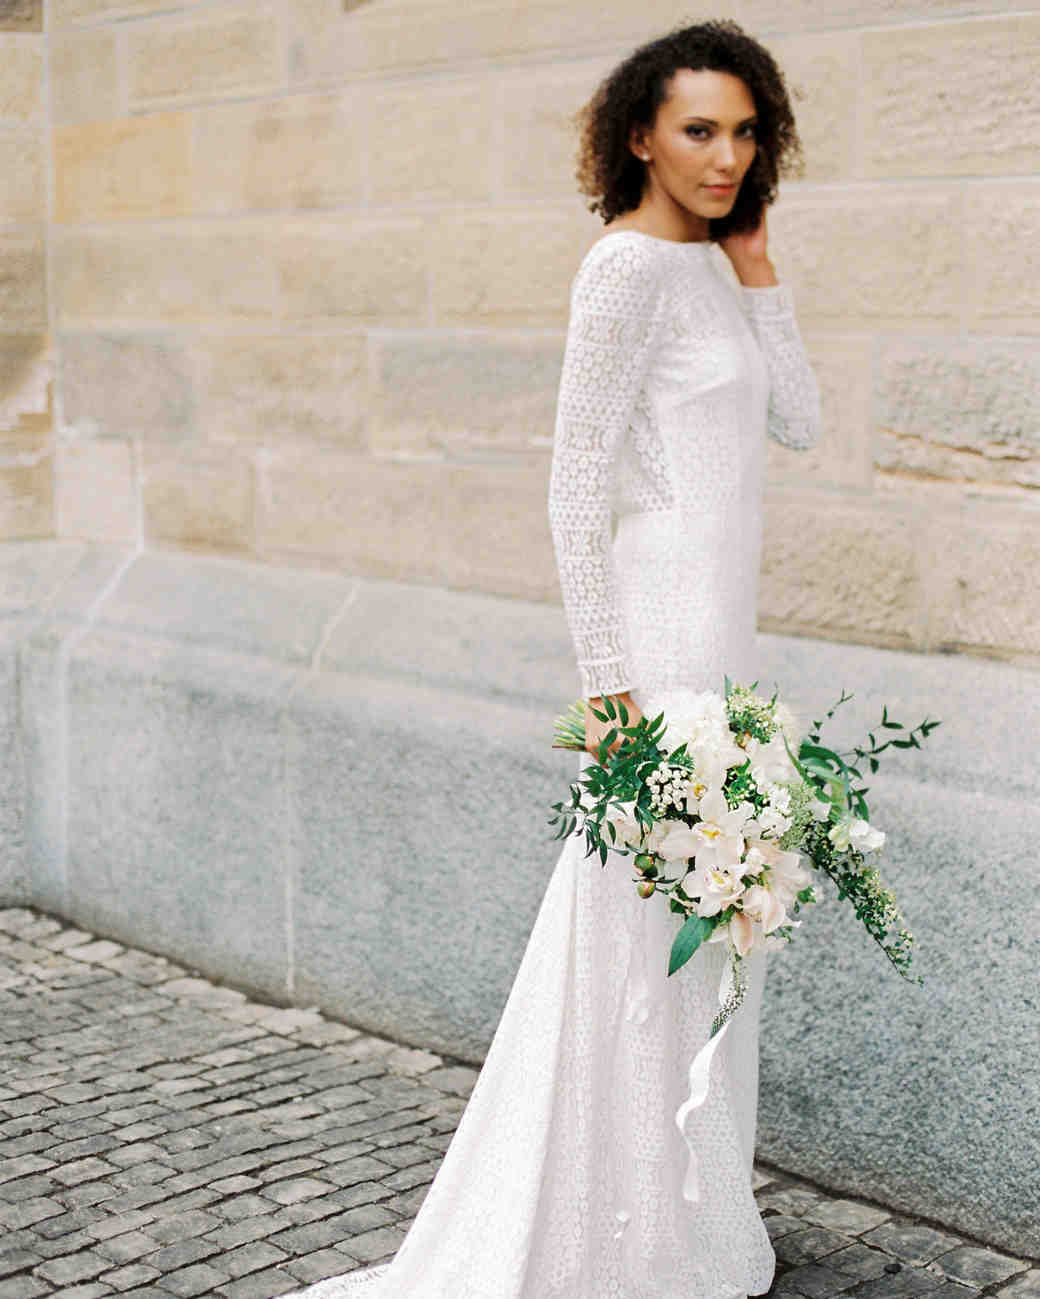 21 Ways to Wear a Boat Neck Wedding Dress | Martha Stewart Weddings